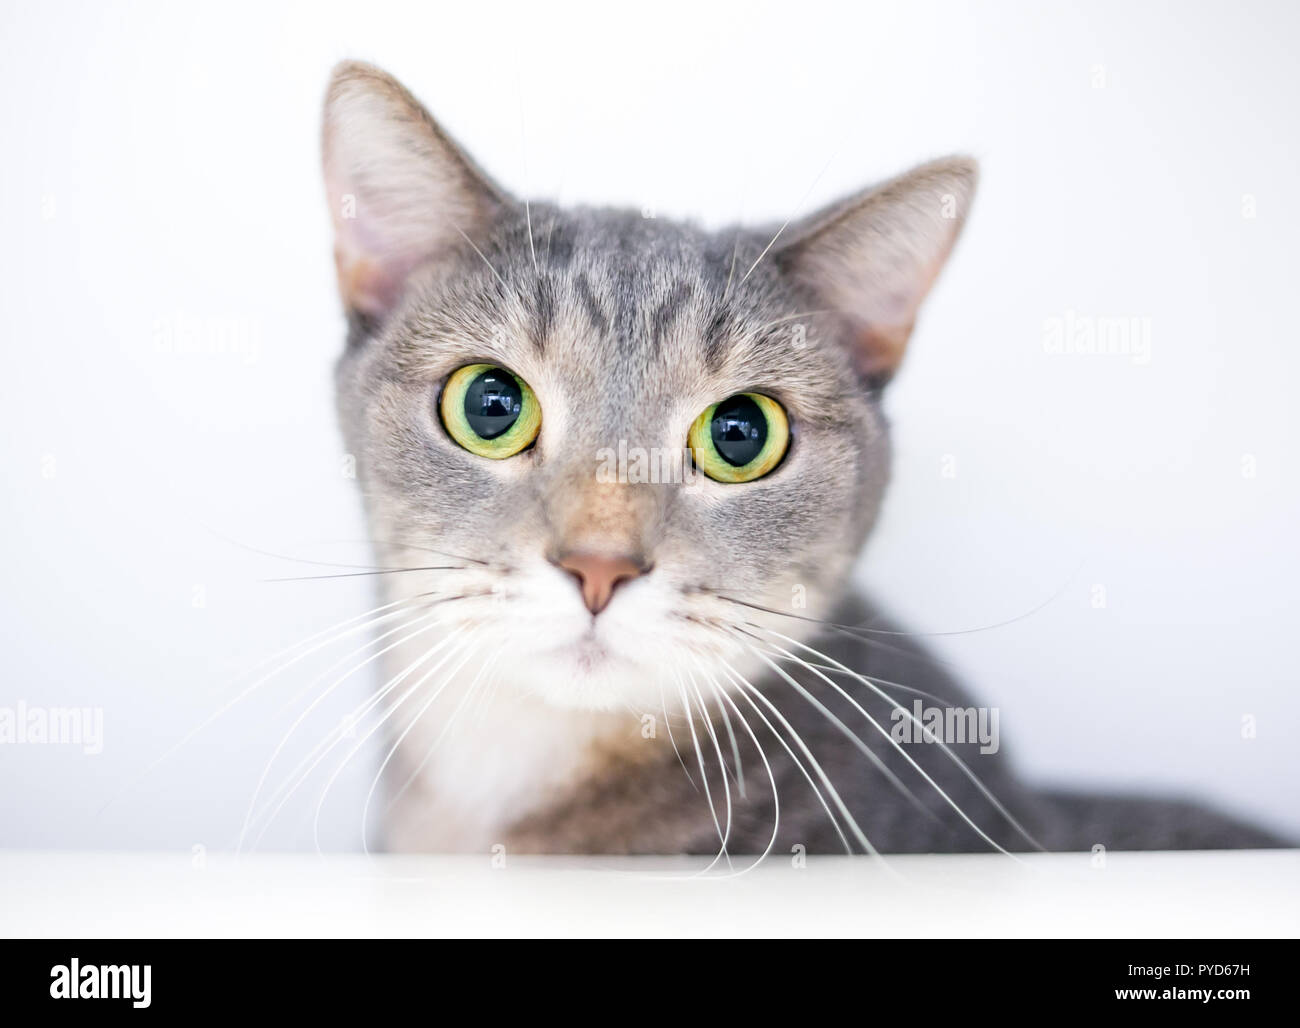 A wide-eyed domestic shorthair cat with large dilated pupils - Stock Image